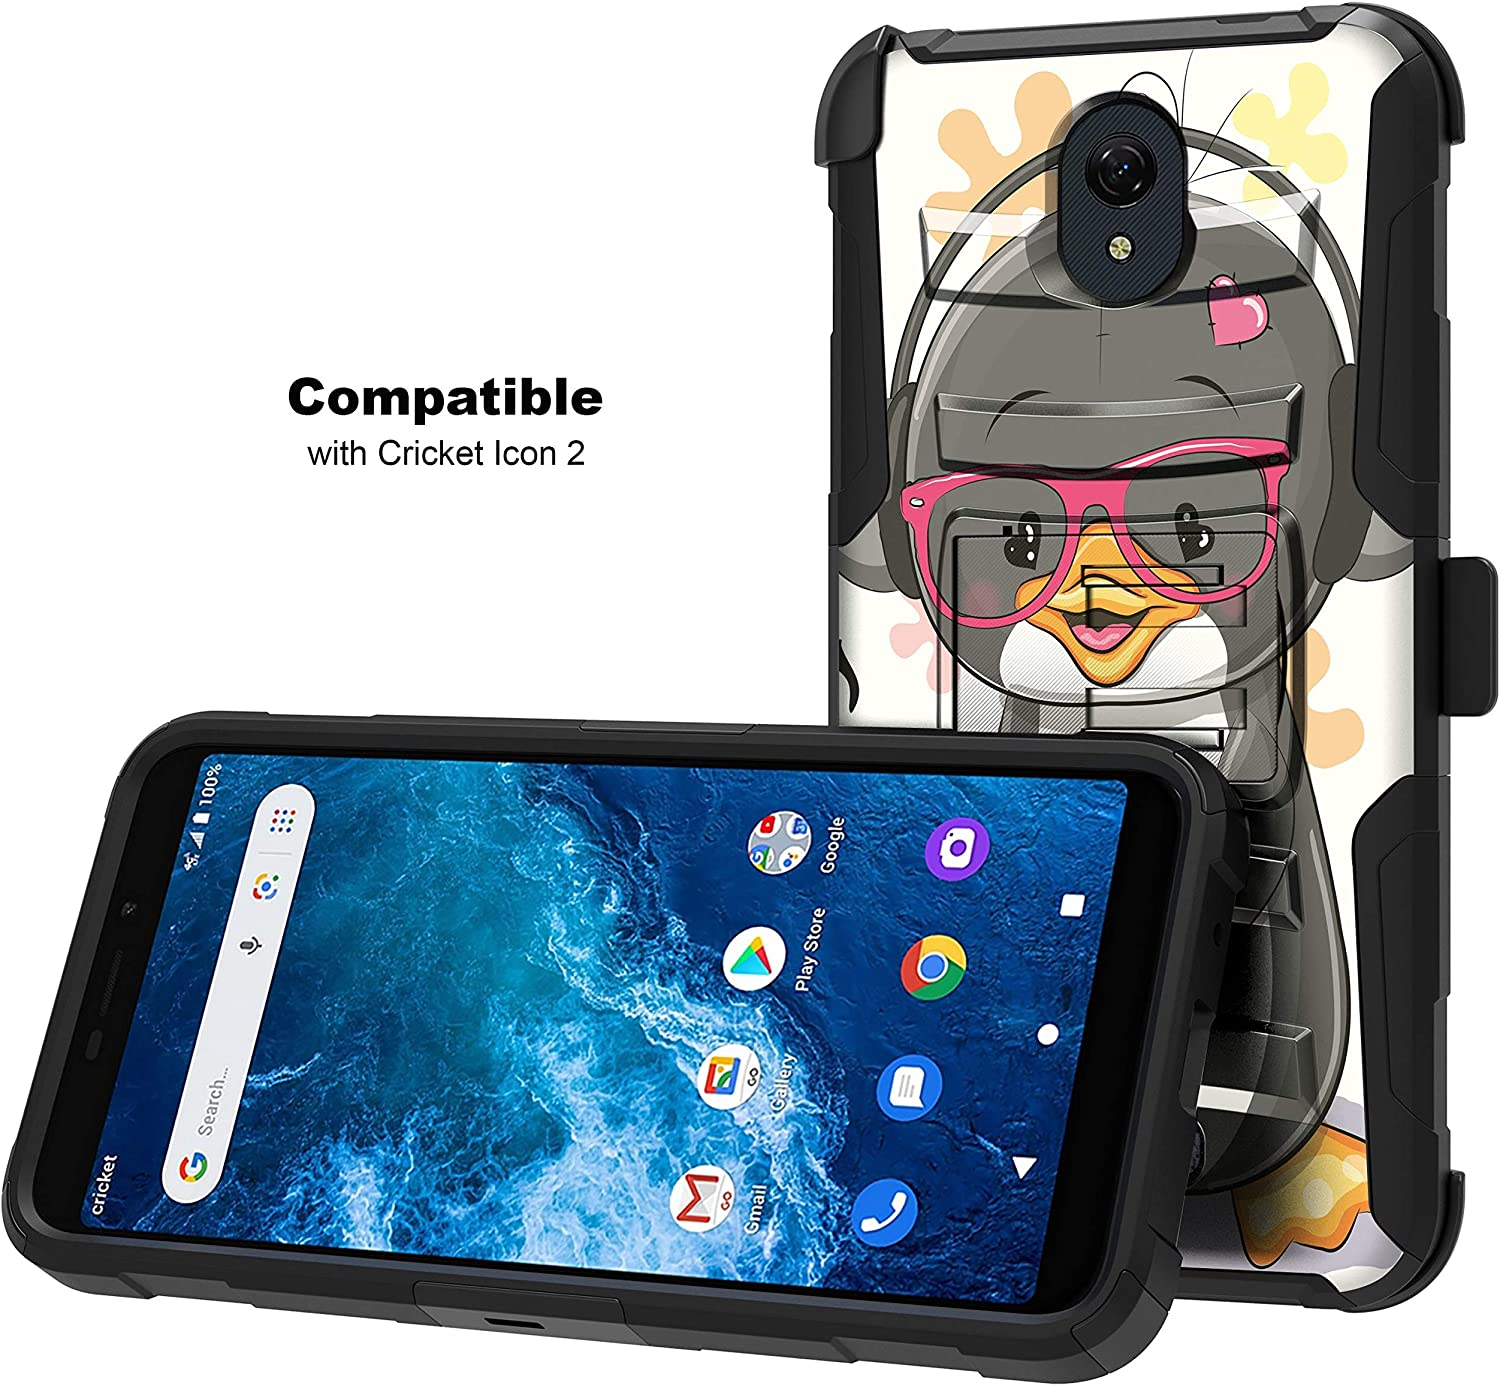 TurtleArmor | Compatible with Cricket Icon 2 Case | U325 [Hyper Shock] Hybrid Reinforced Dual Layer Case Belt Clip Holster Stand Sea Ocean - Cute Penguin